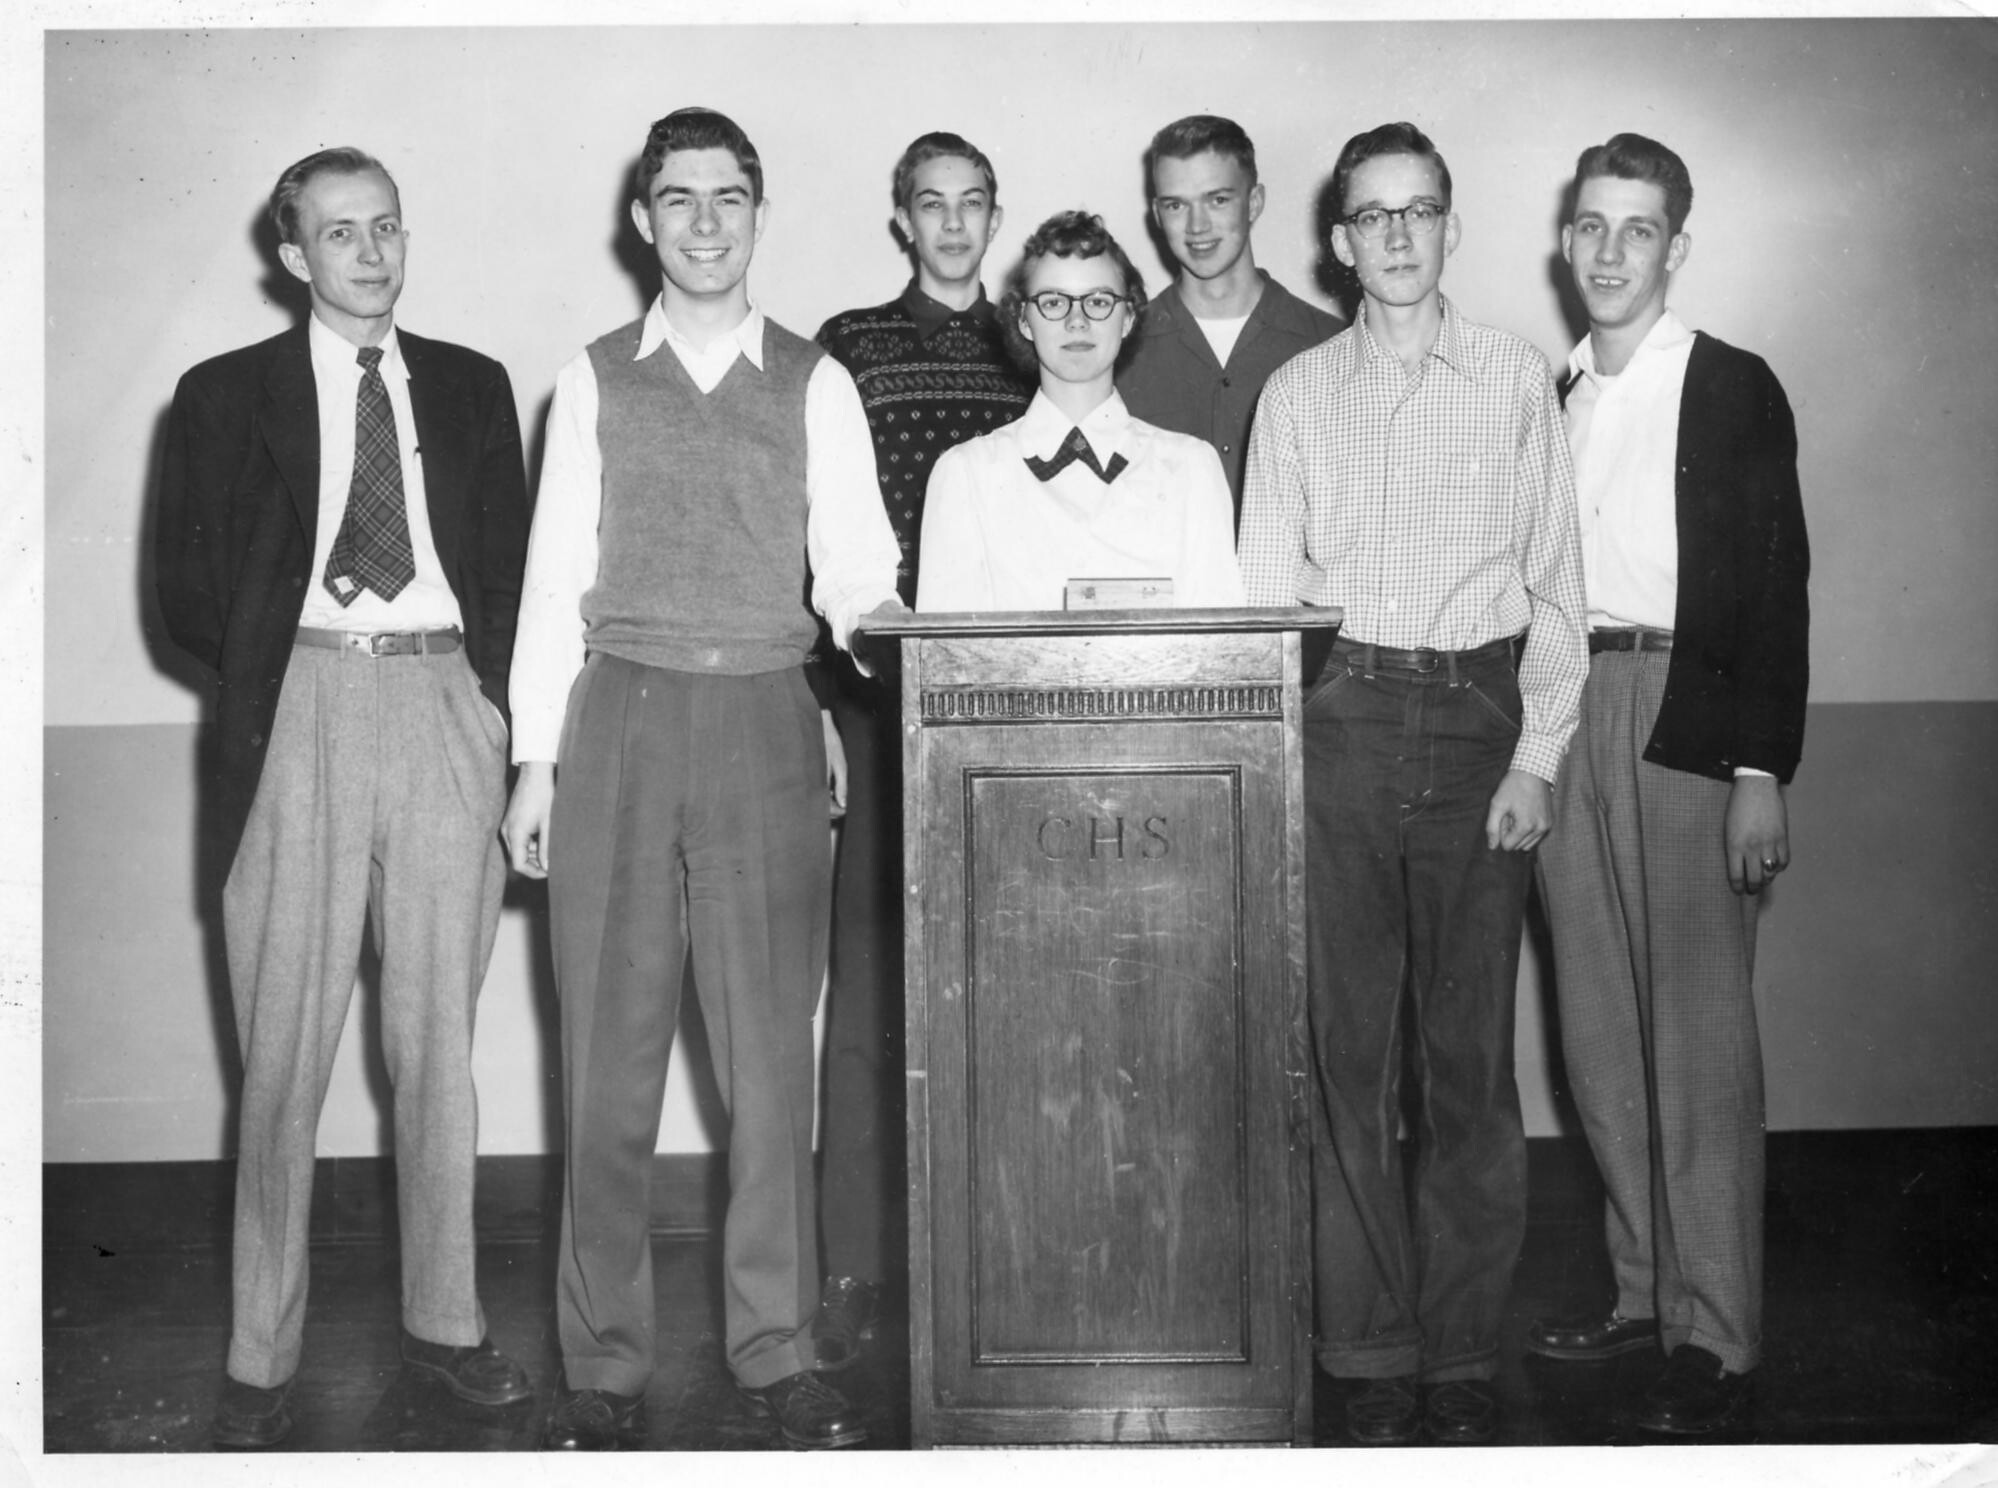 Black and white photo of a mid-century high school debate team. There are six skinny white men with various nerd accoutrements like glasses, sweater vests, and ill-fitting clothes, and one white woman with glasses standing behind a podium.